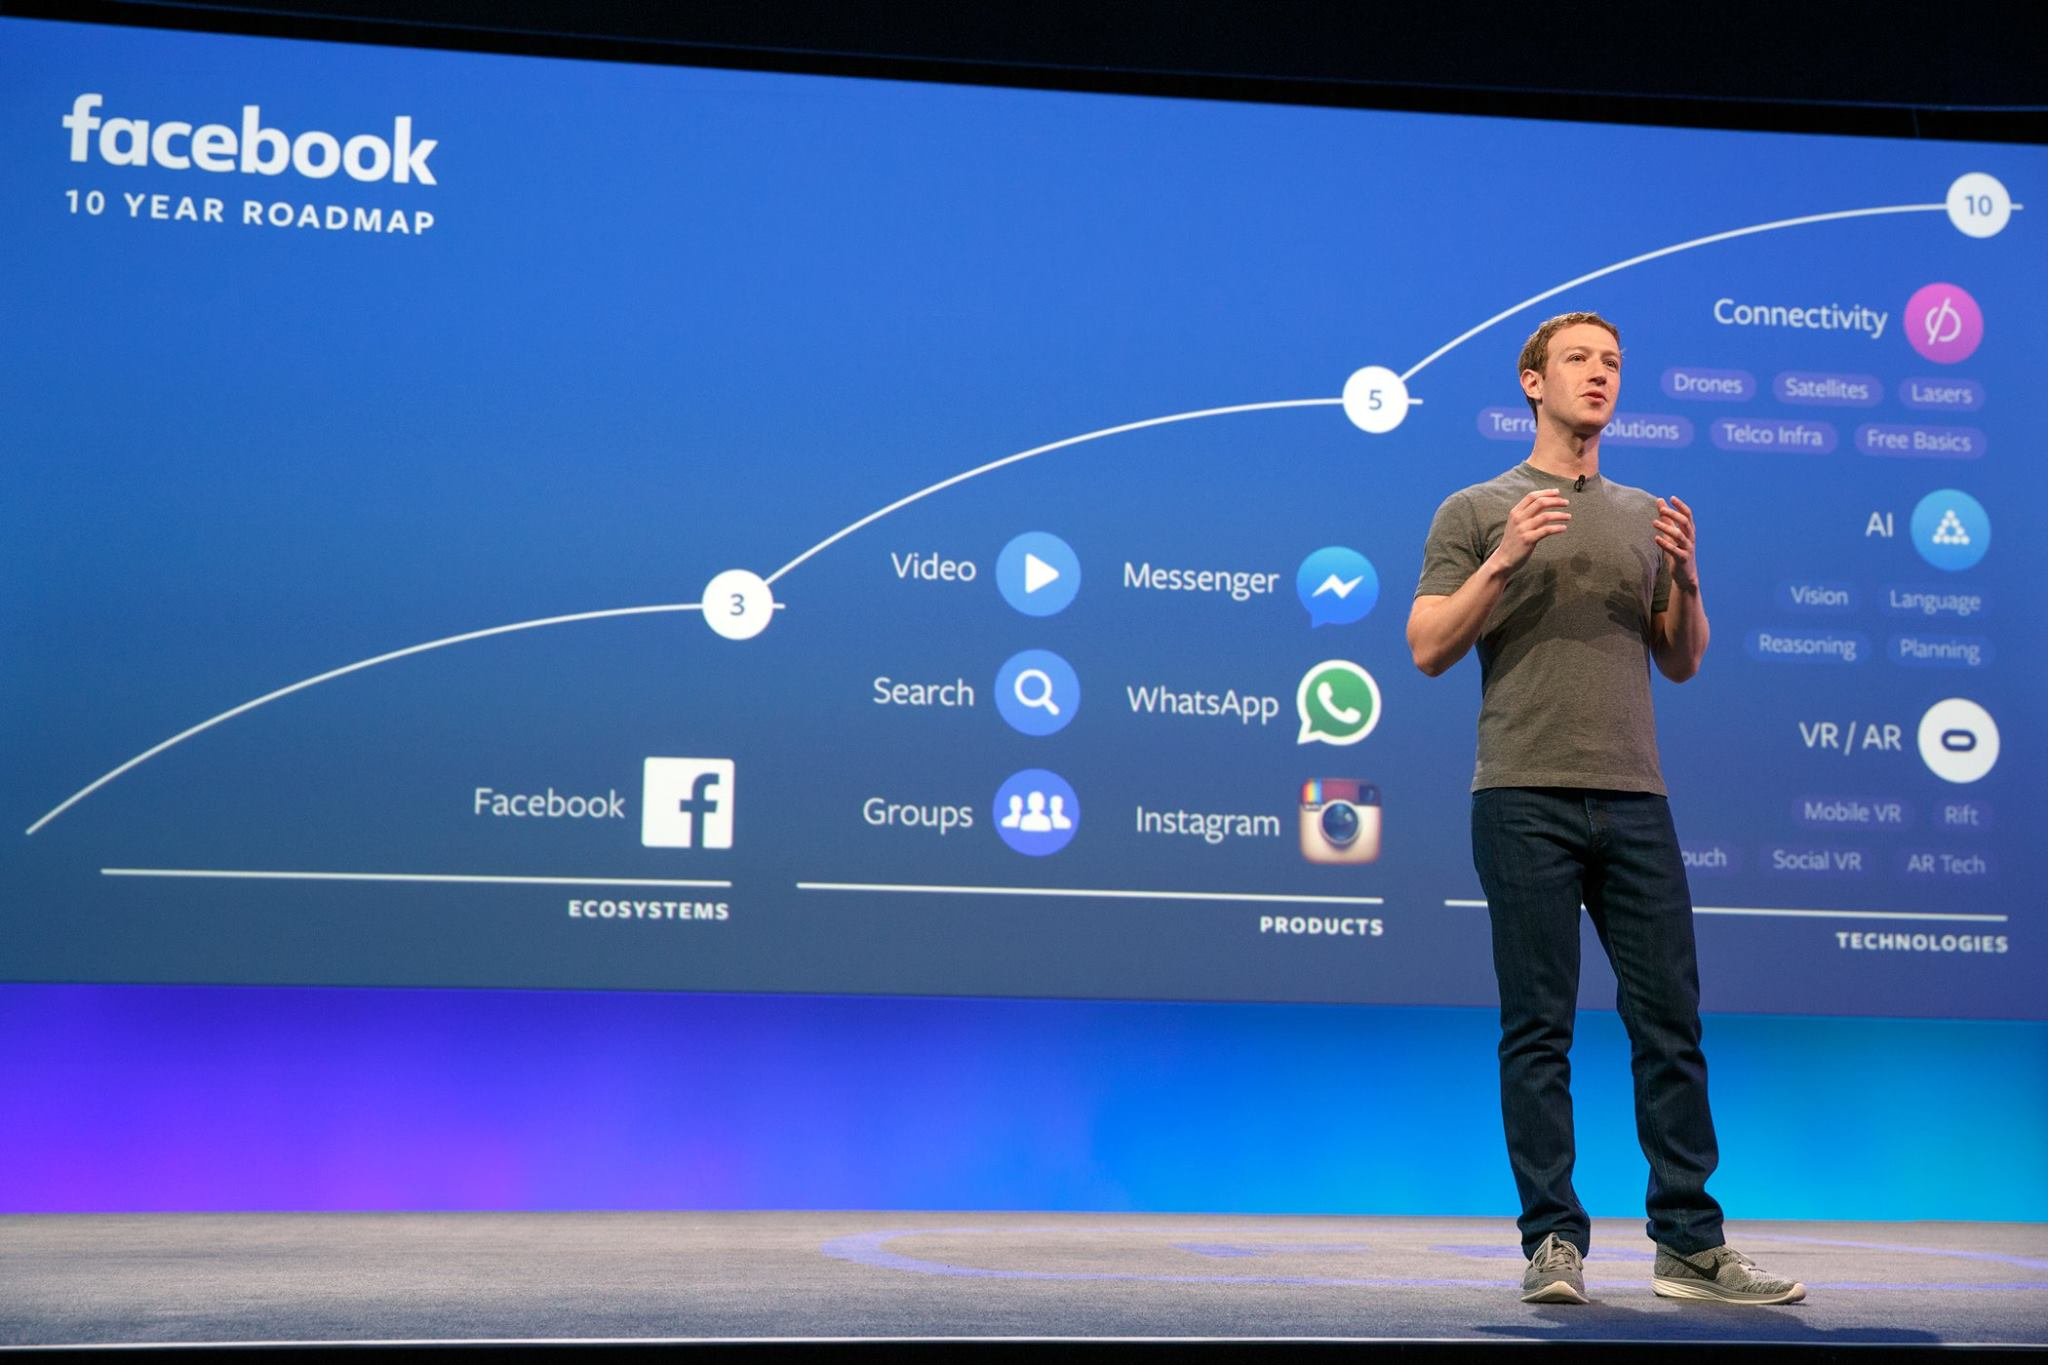 highlights-from-facebook-f8-developer-conference-2016-502861-2.jpg